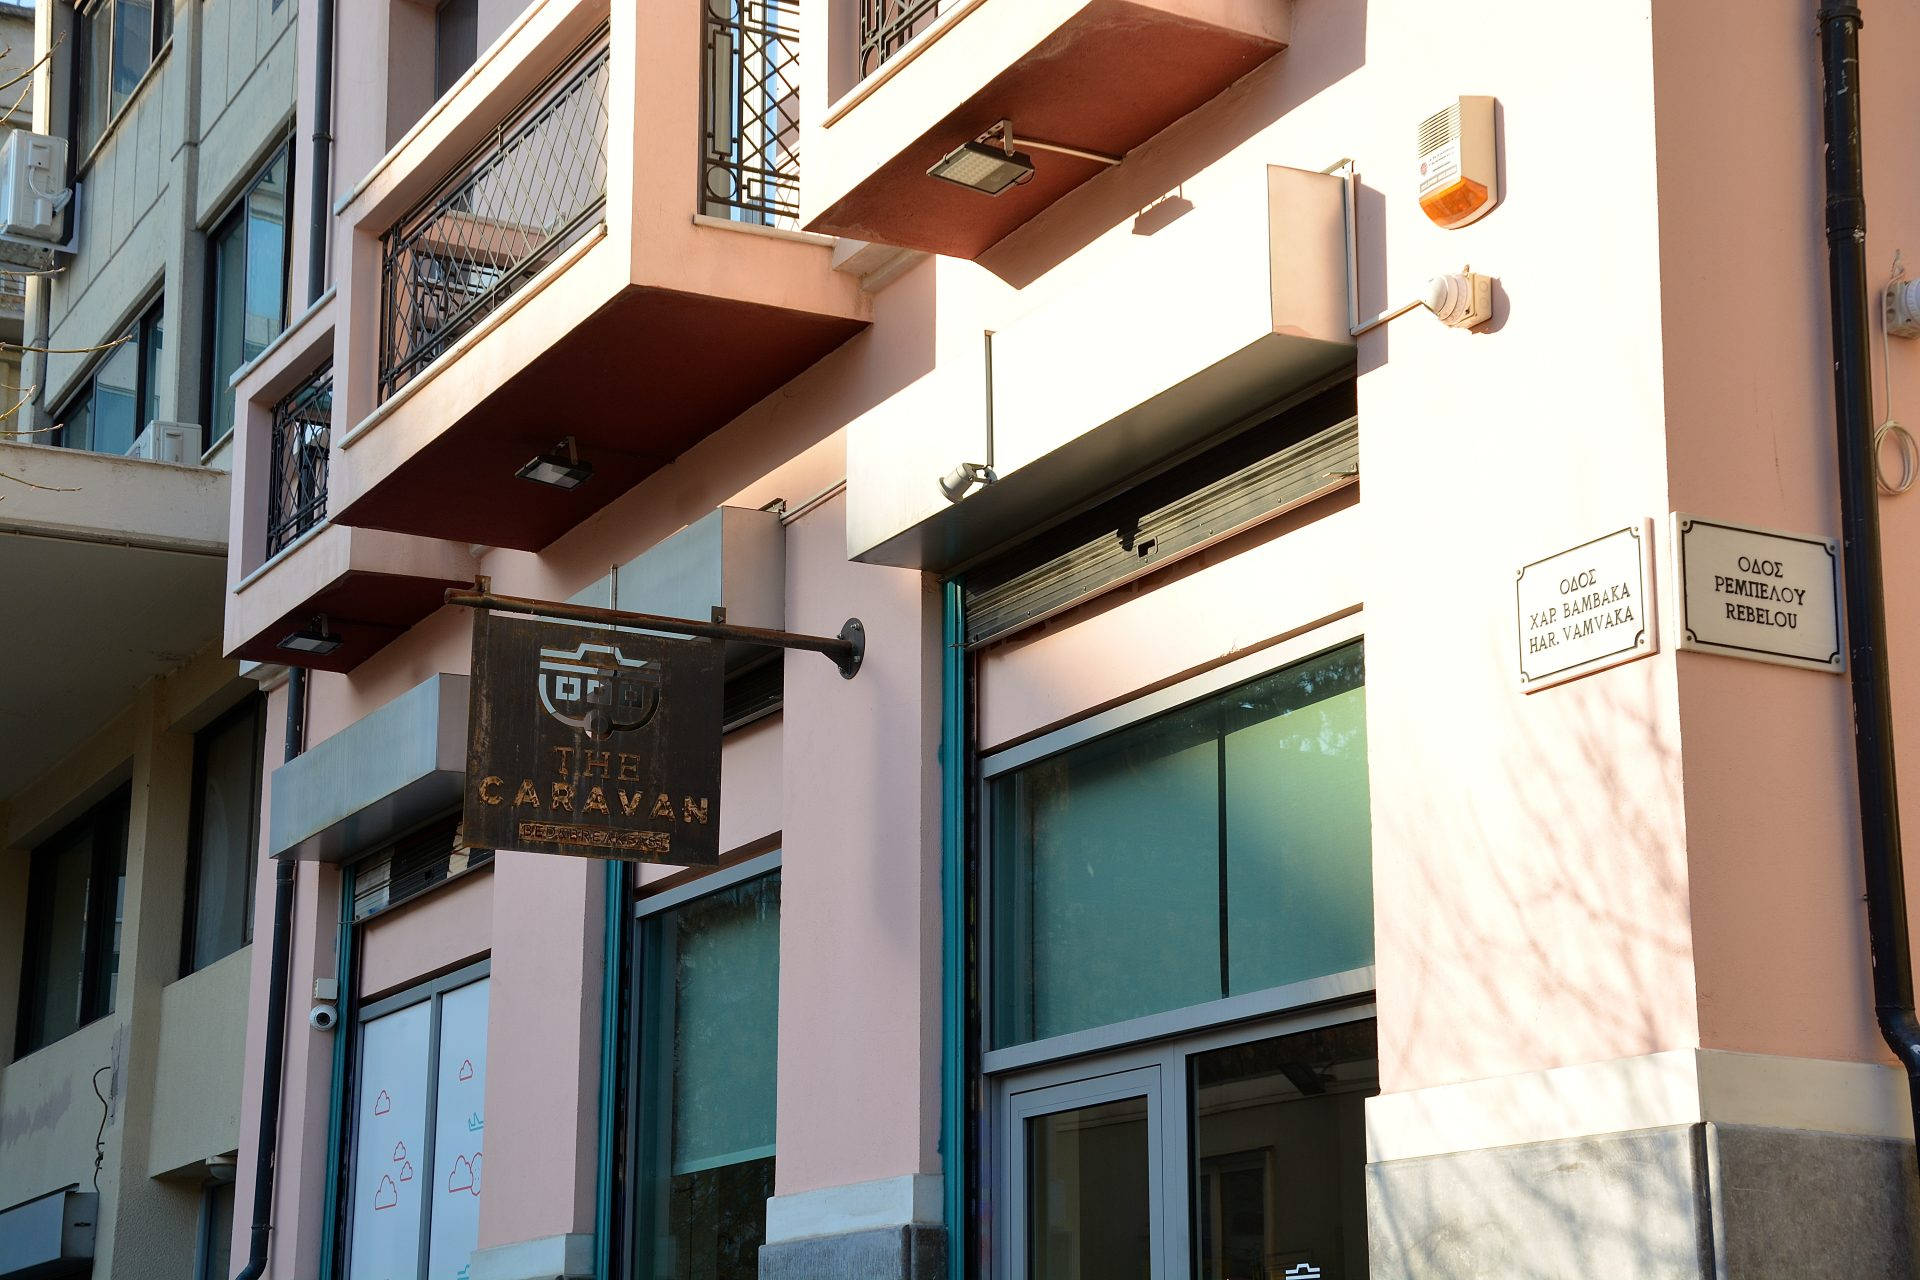 The Caravan Bed & Breakfast in Thessaloniki, Greece